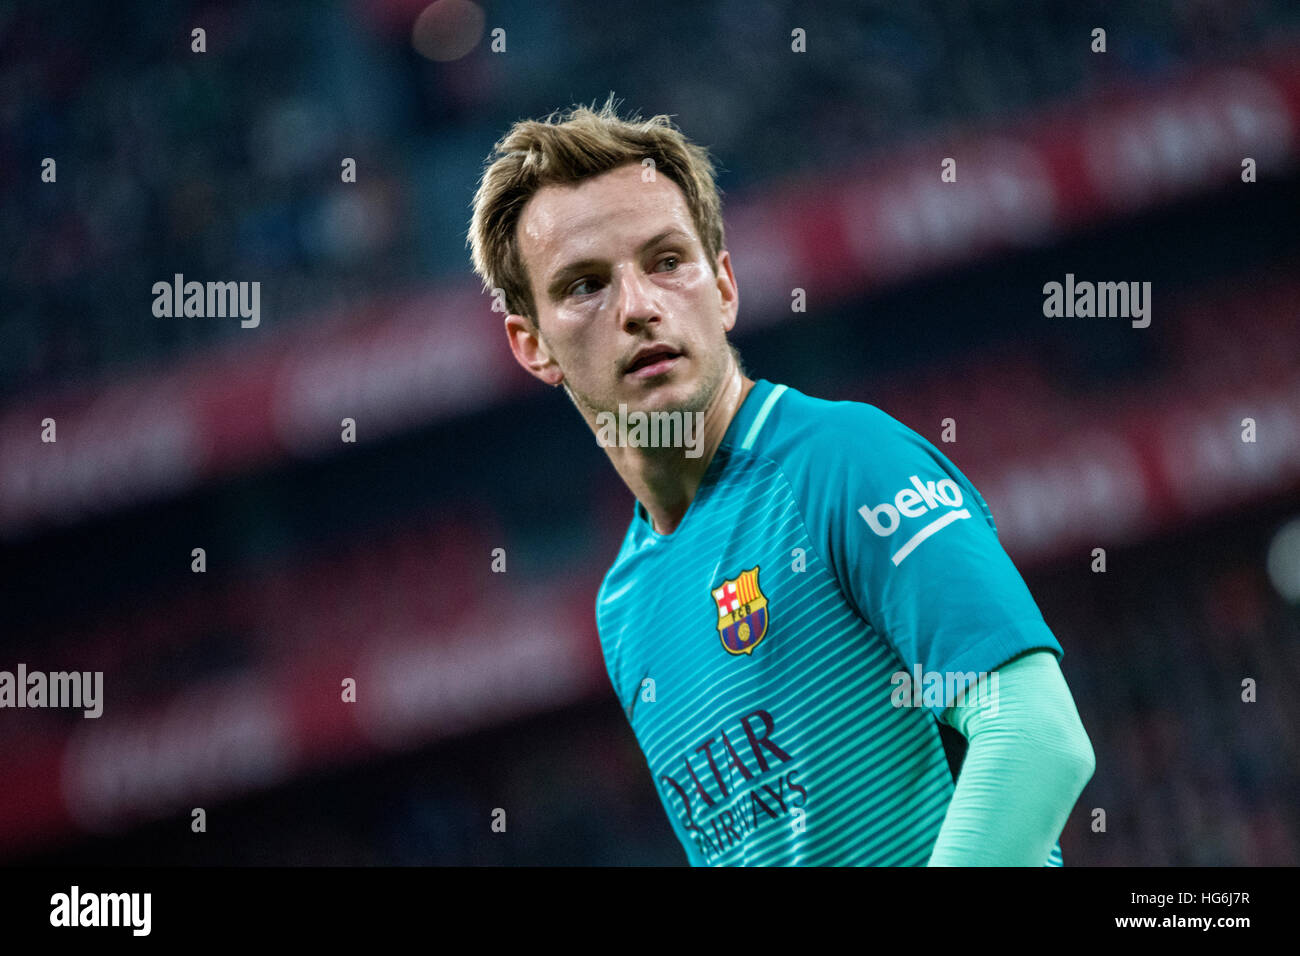 Bilbao, Spain. 5th January, 2017. Ivan Rakitic (Mildfierder, FC Barcelona) during the football match of Spanish - Stock Image